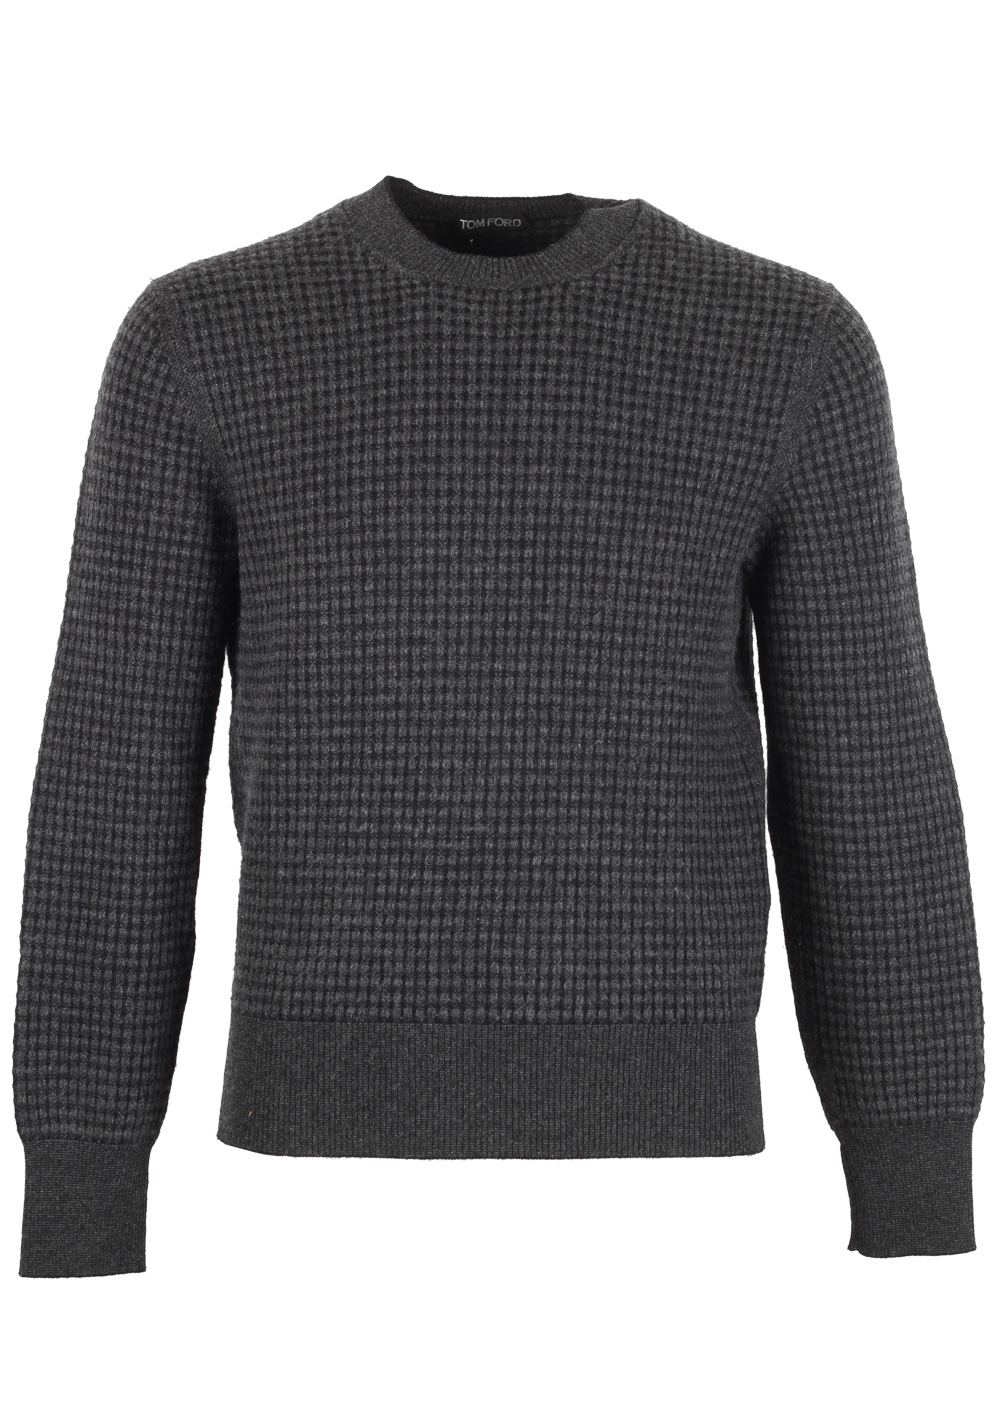 TOM FORD Gray Crew Neck Sweater Size 48 / 38R U.S. In Wool Cashmere | Costume Limité